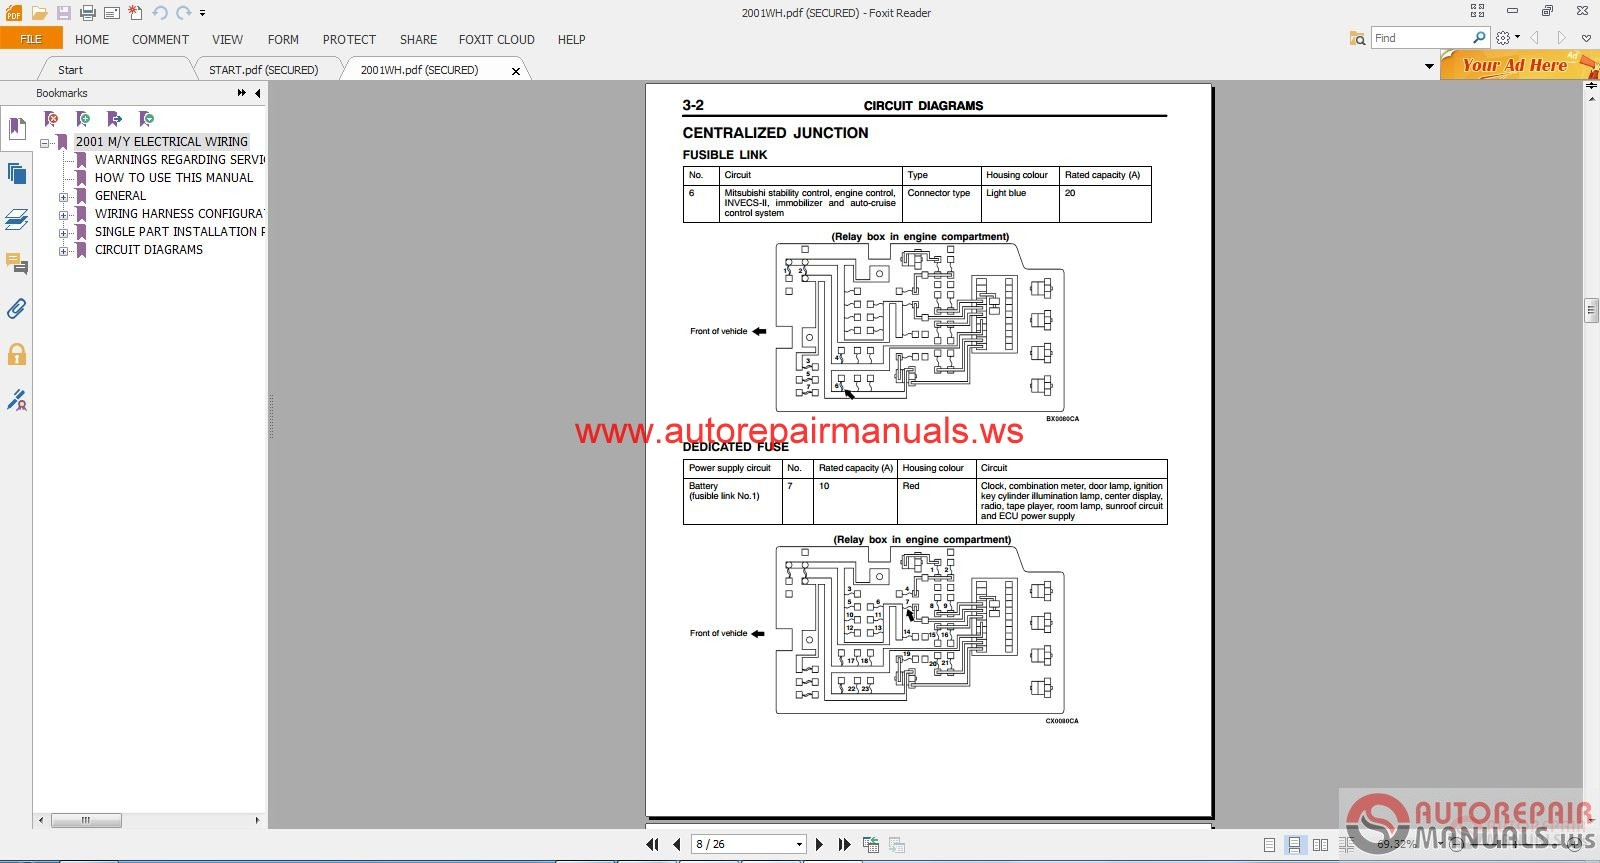 radio wiring diagram for mitsubishi montero sport images 2003 mitsubishi montero sport fuse box diagram 2002